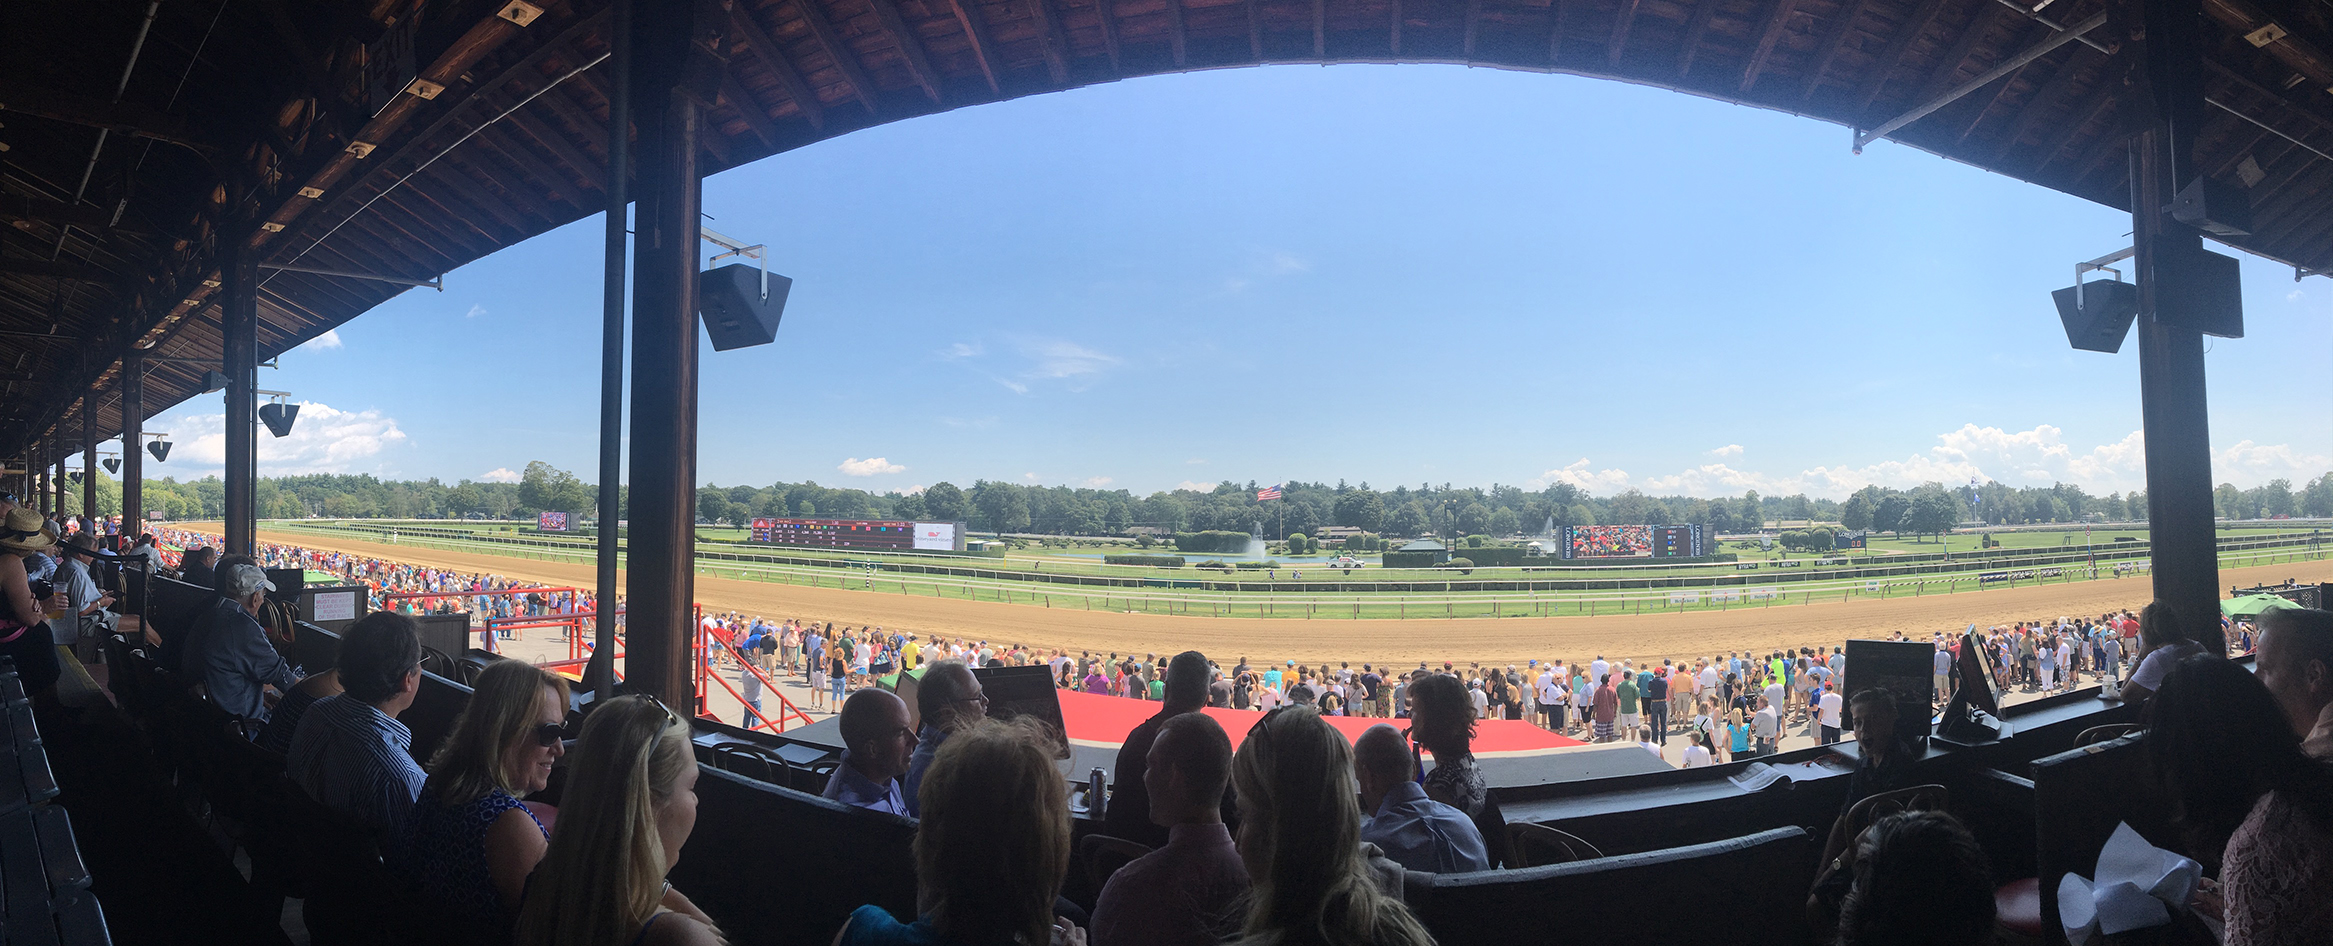 Panoramic image of Saratoga Springs race track. Photo: Robert Sage